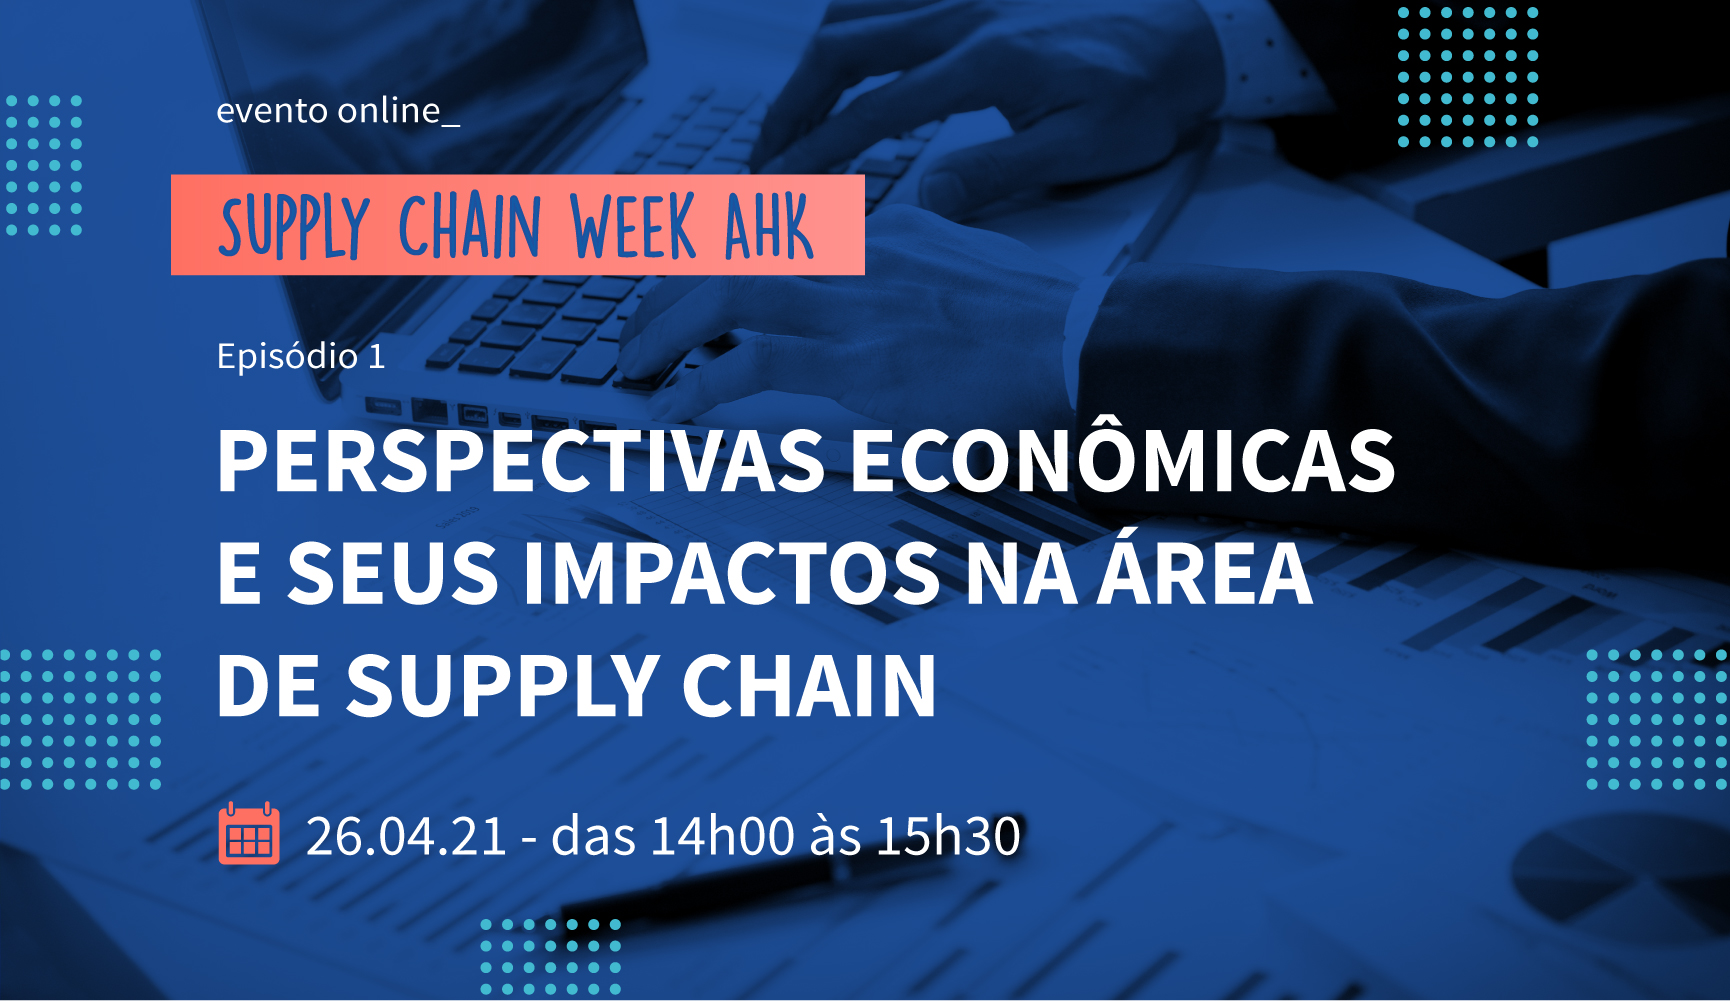 Supply Chain Week AHK | Episódio 1 - Perspectivas Econômicas e seus Impactos na Área de Supply Chain